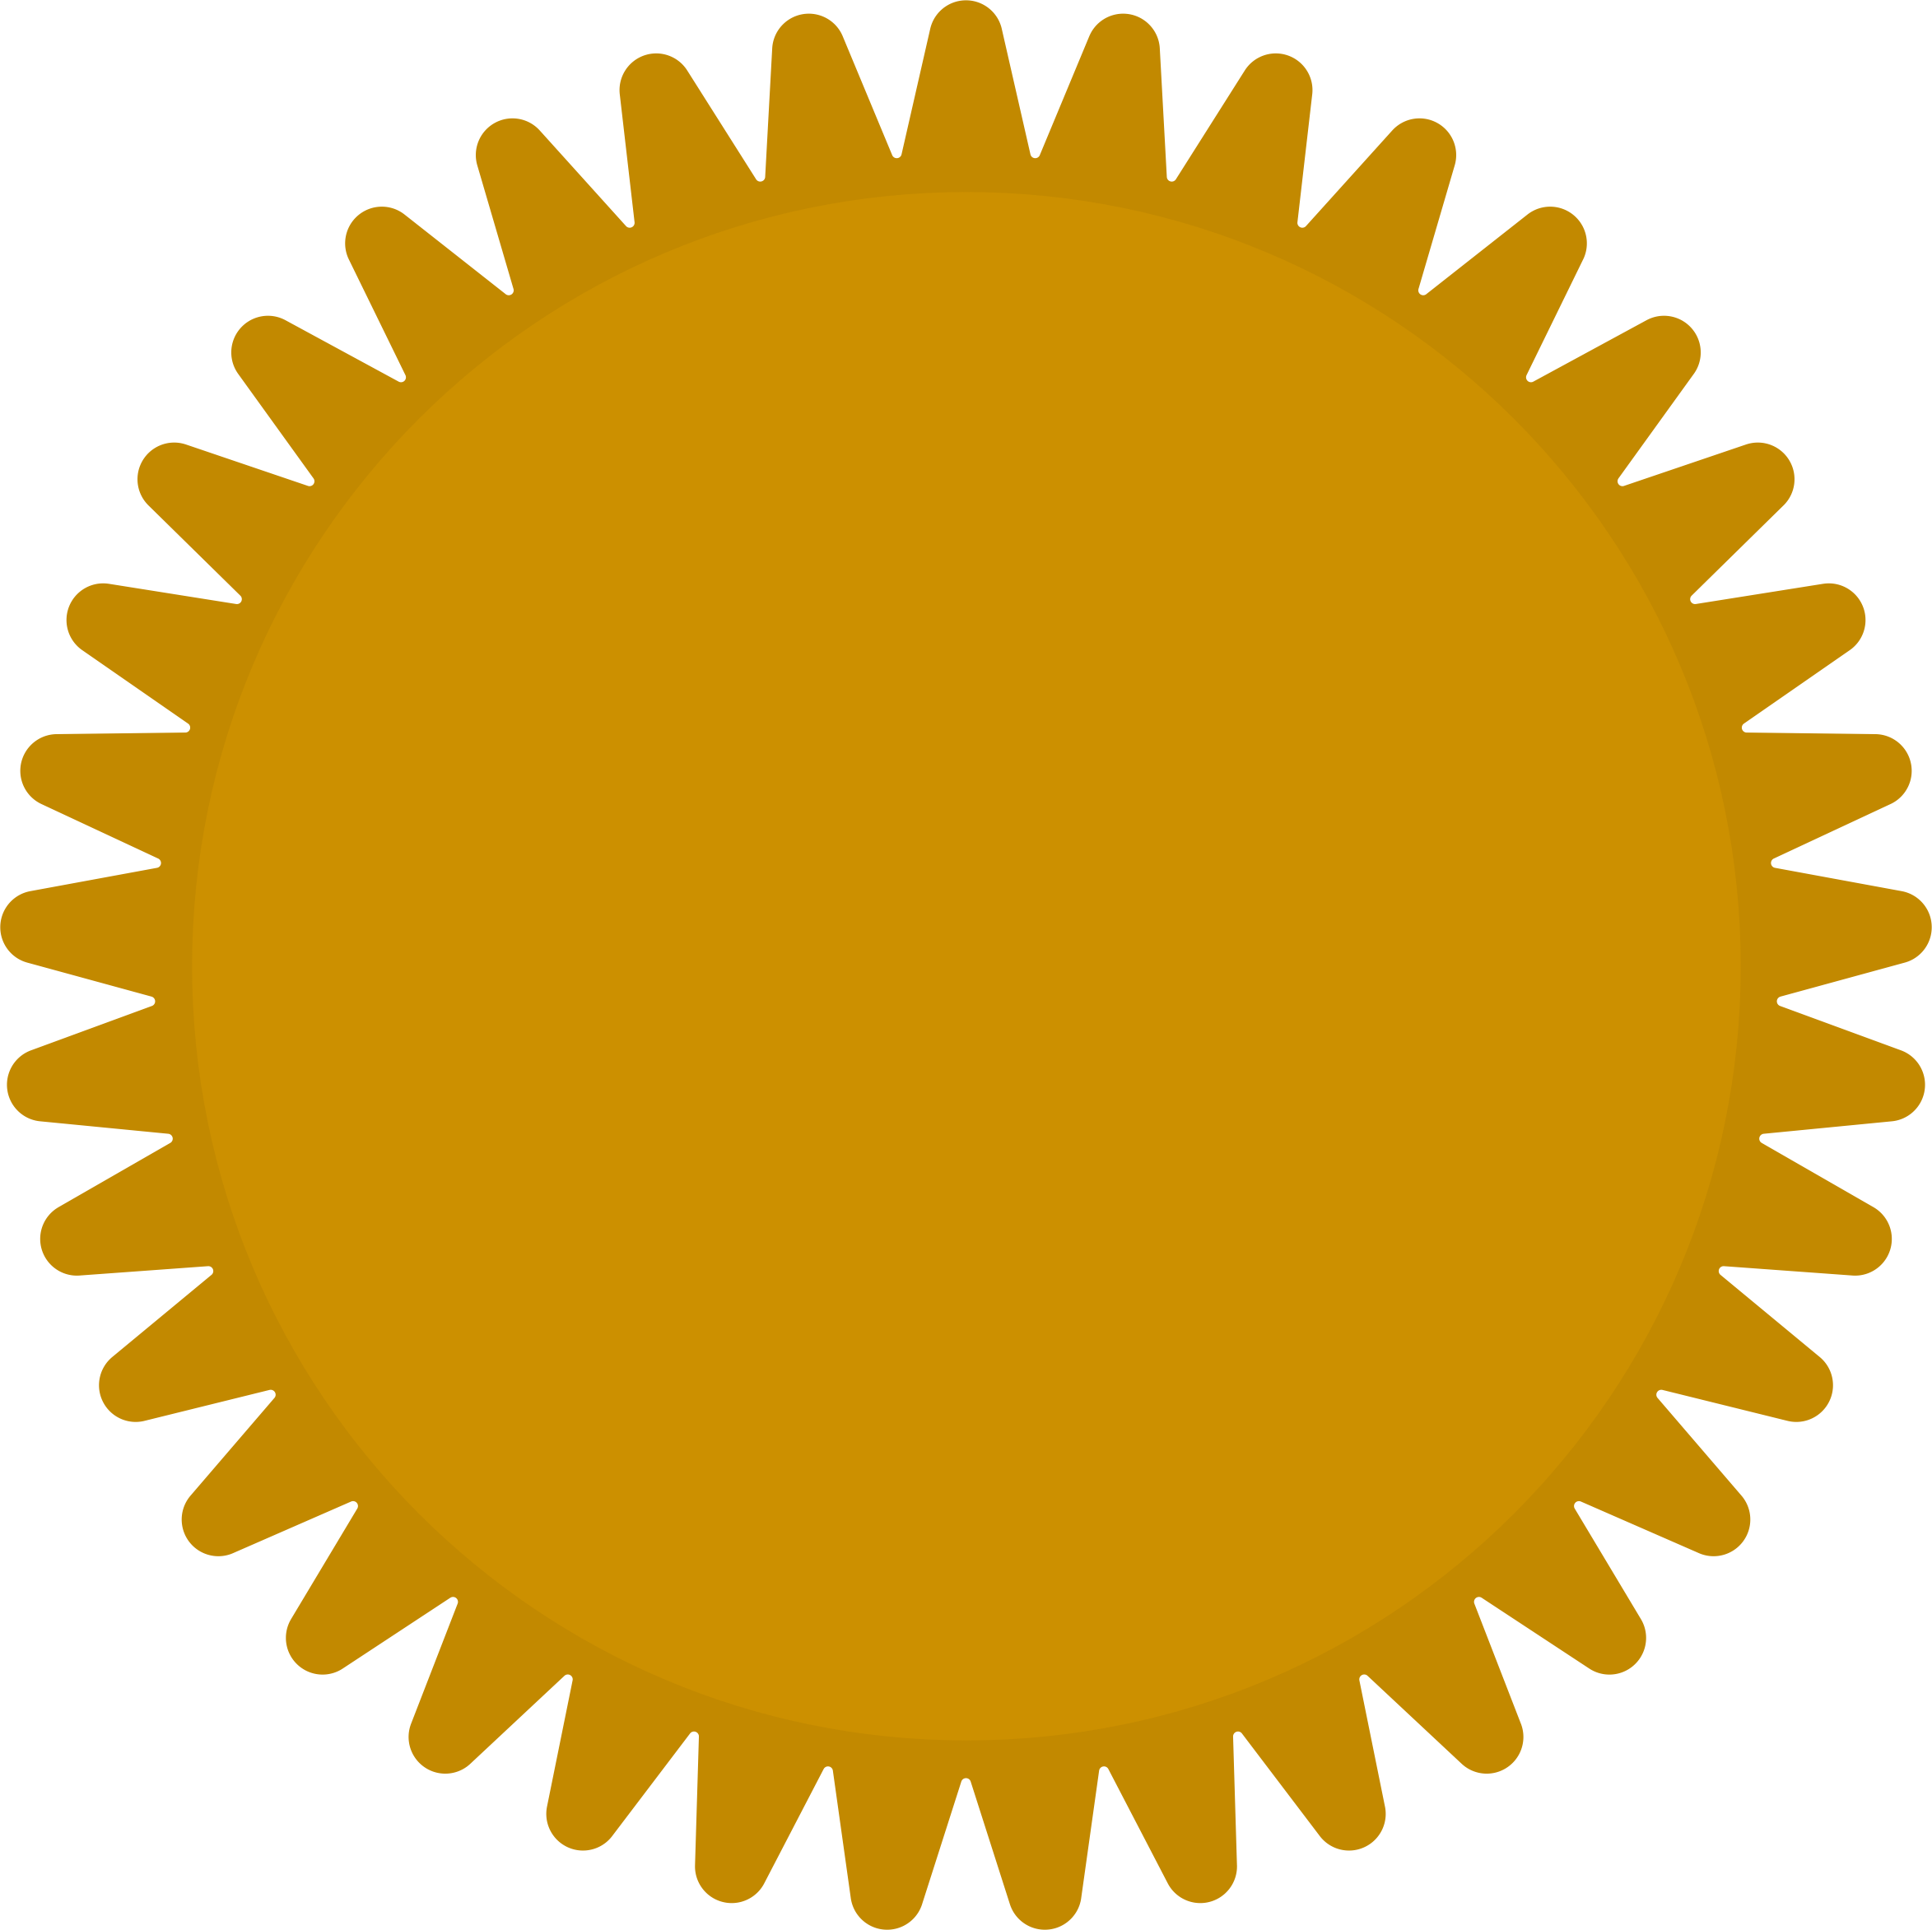 Clipart gold seal clipart transparent stock Free Gold Seal Cliparts, Download Free Clip Art, Free Clip Art on ... clipart transparent stock